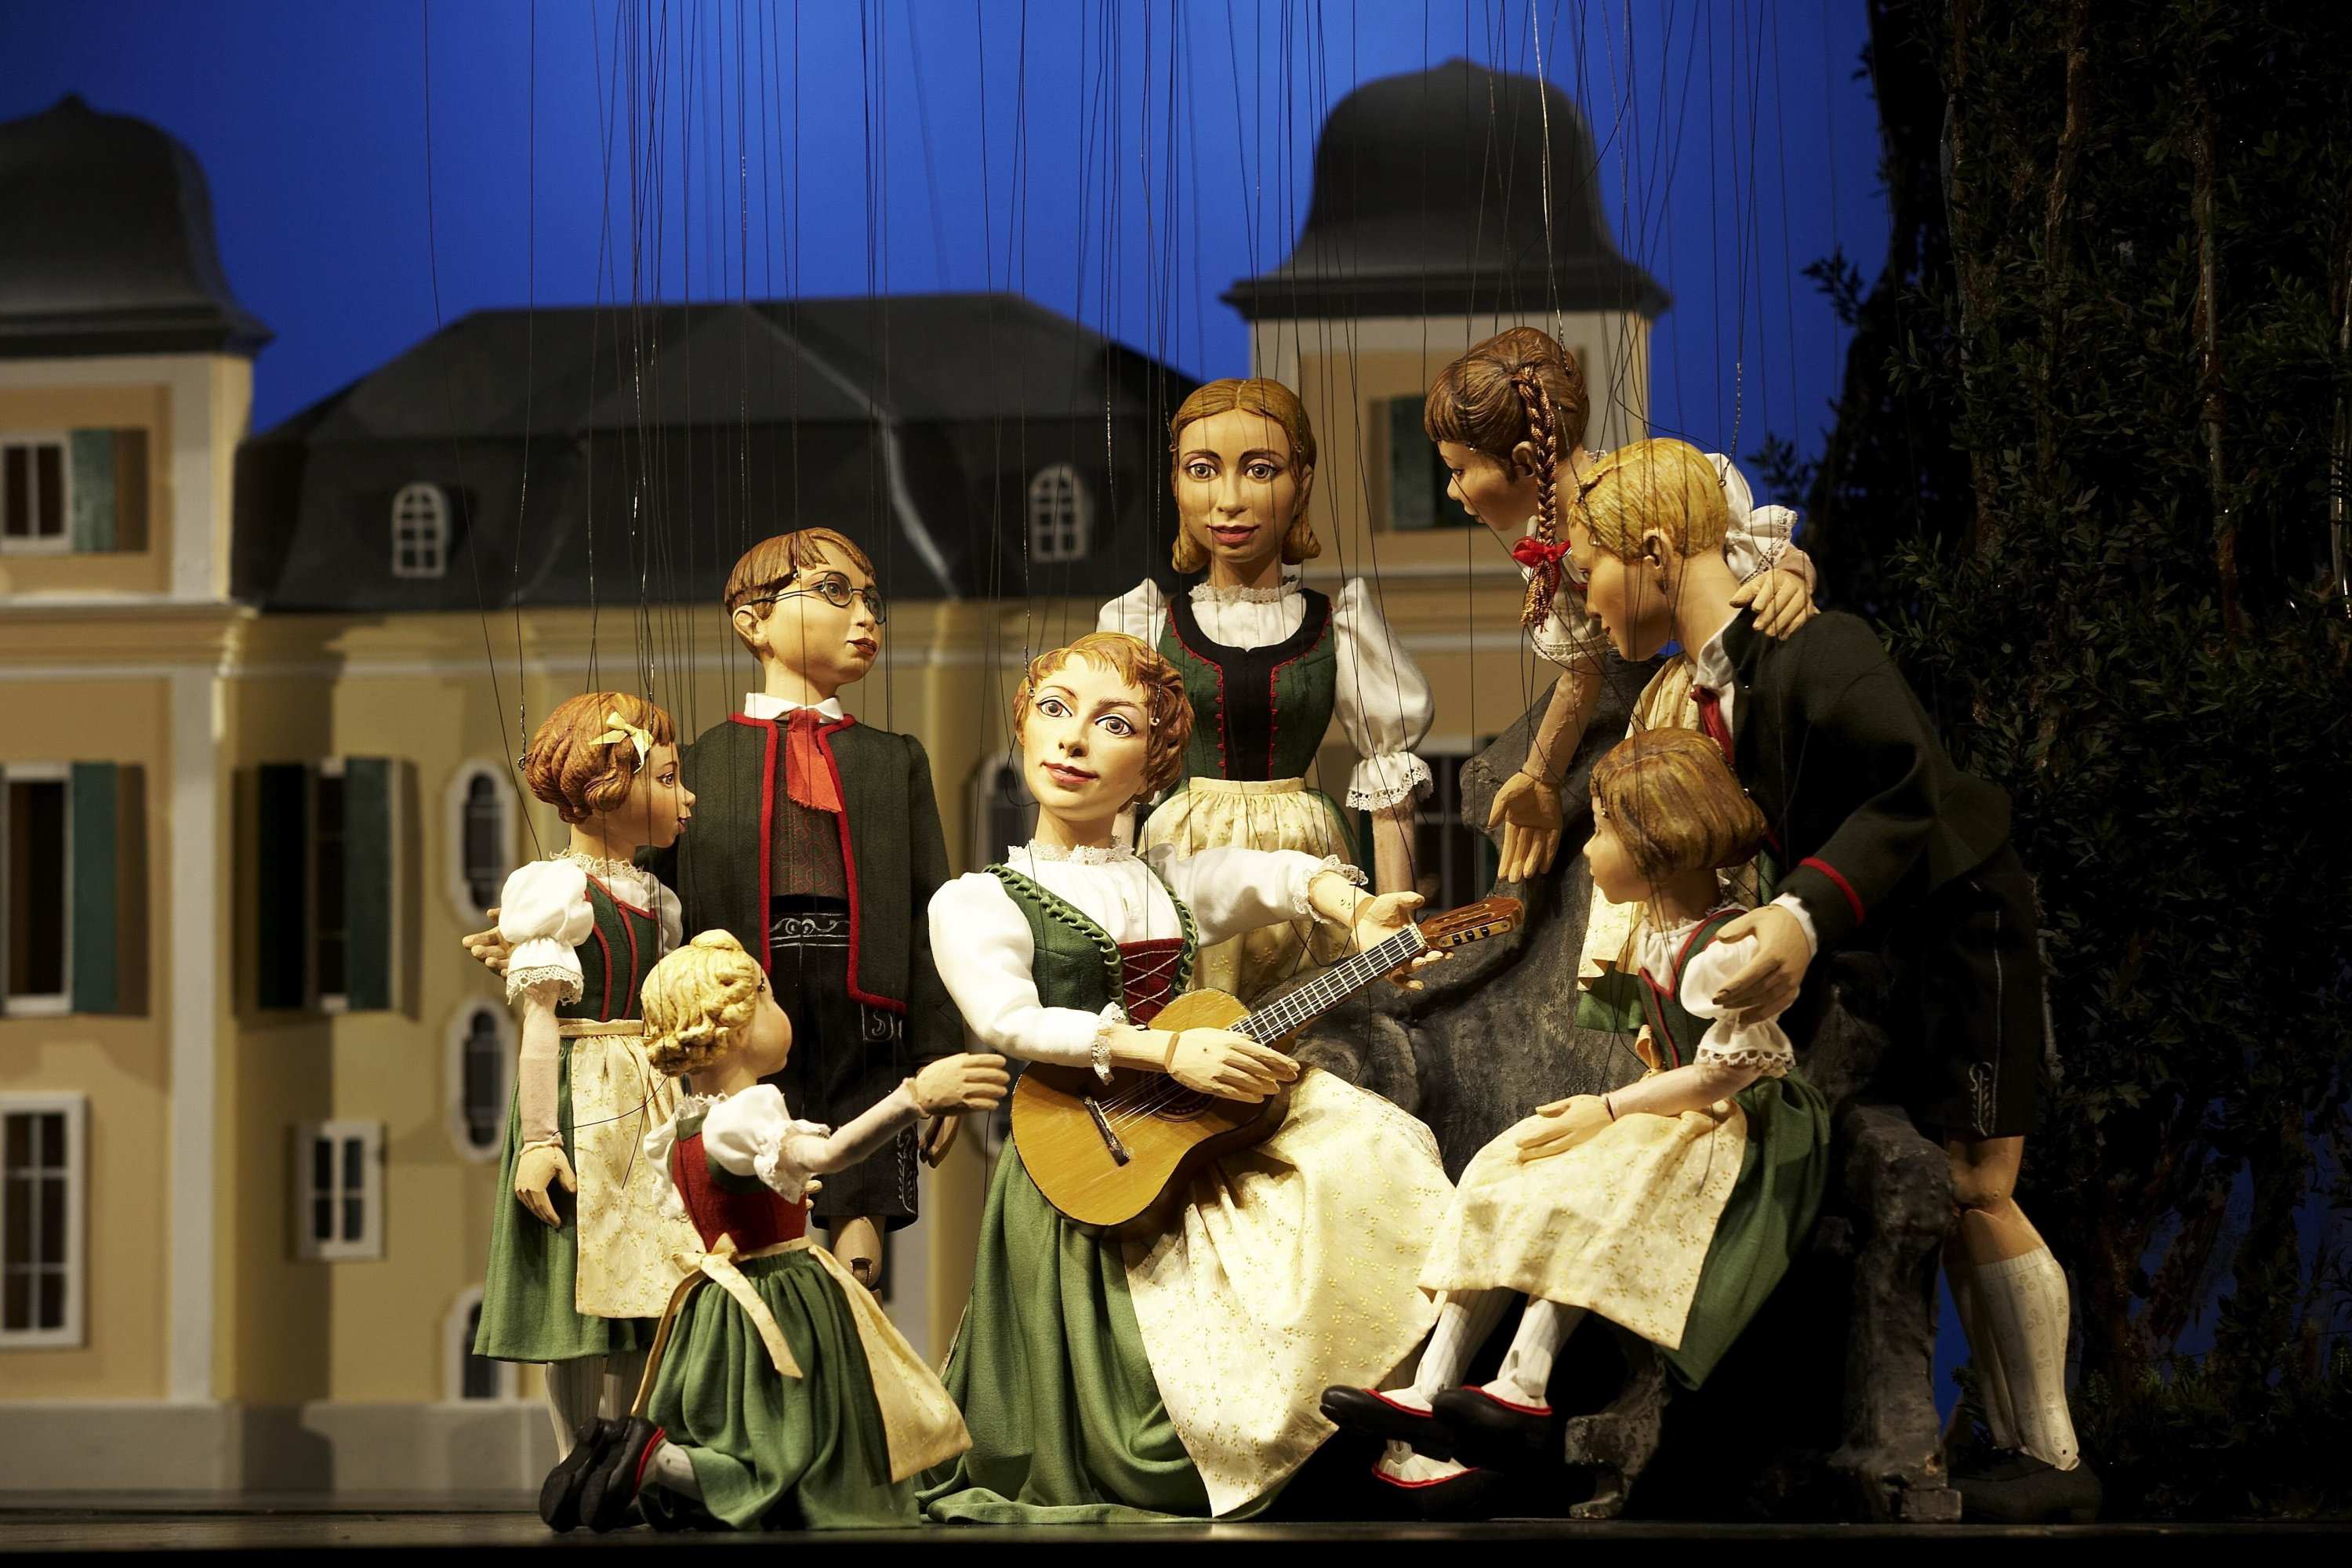 The Salzburg Marionette Theatre is a classic since 1913, and not only for families with children. (Tourismus Salzburg GmbH/dpa Photo)